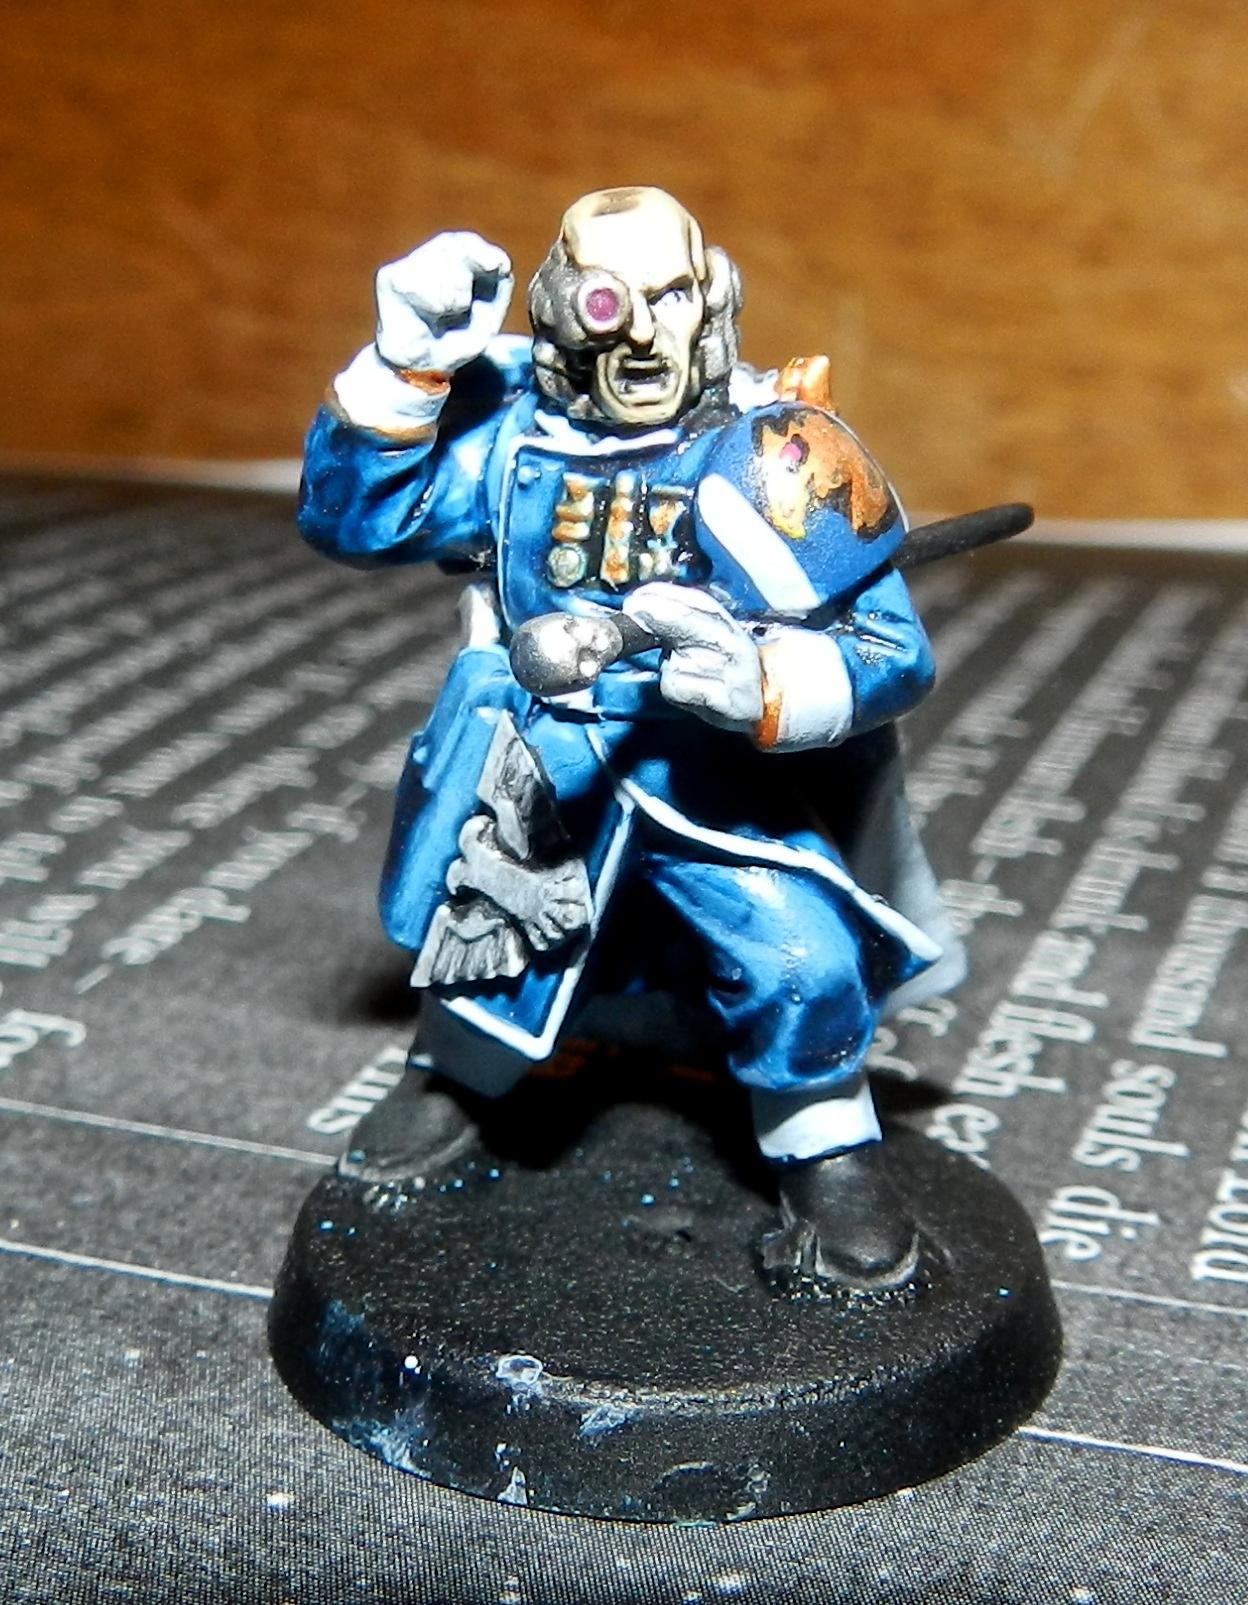 Adeptus Arbites, Advisor, Cadians, Ccs, Command Squad, Conversion, Gears Of War, Imperial Guard, Officer Of The Fleet, Warhammer 40,000, Work In Progress